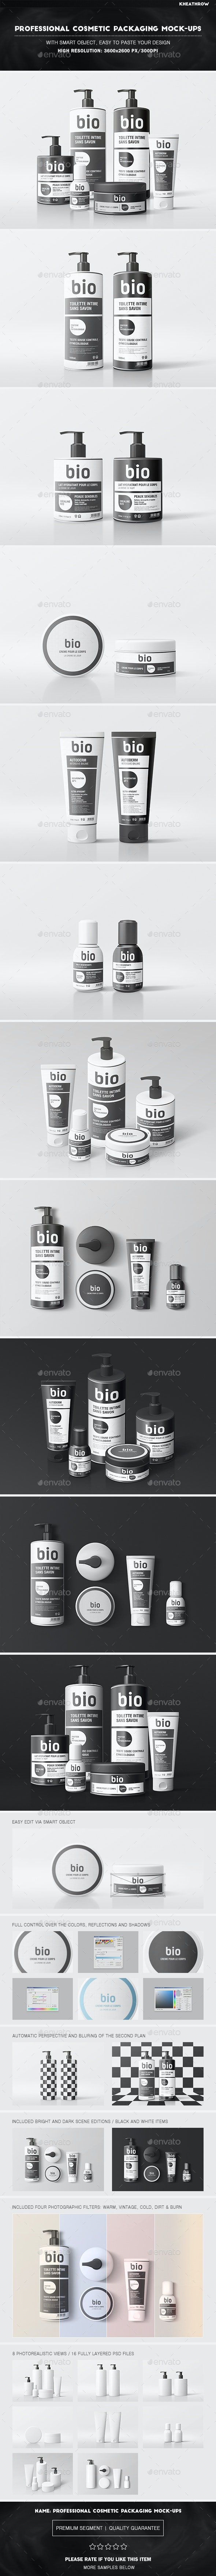 Professional Cosmetic Packaging Mock-Ups - Beauty Packaging